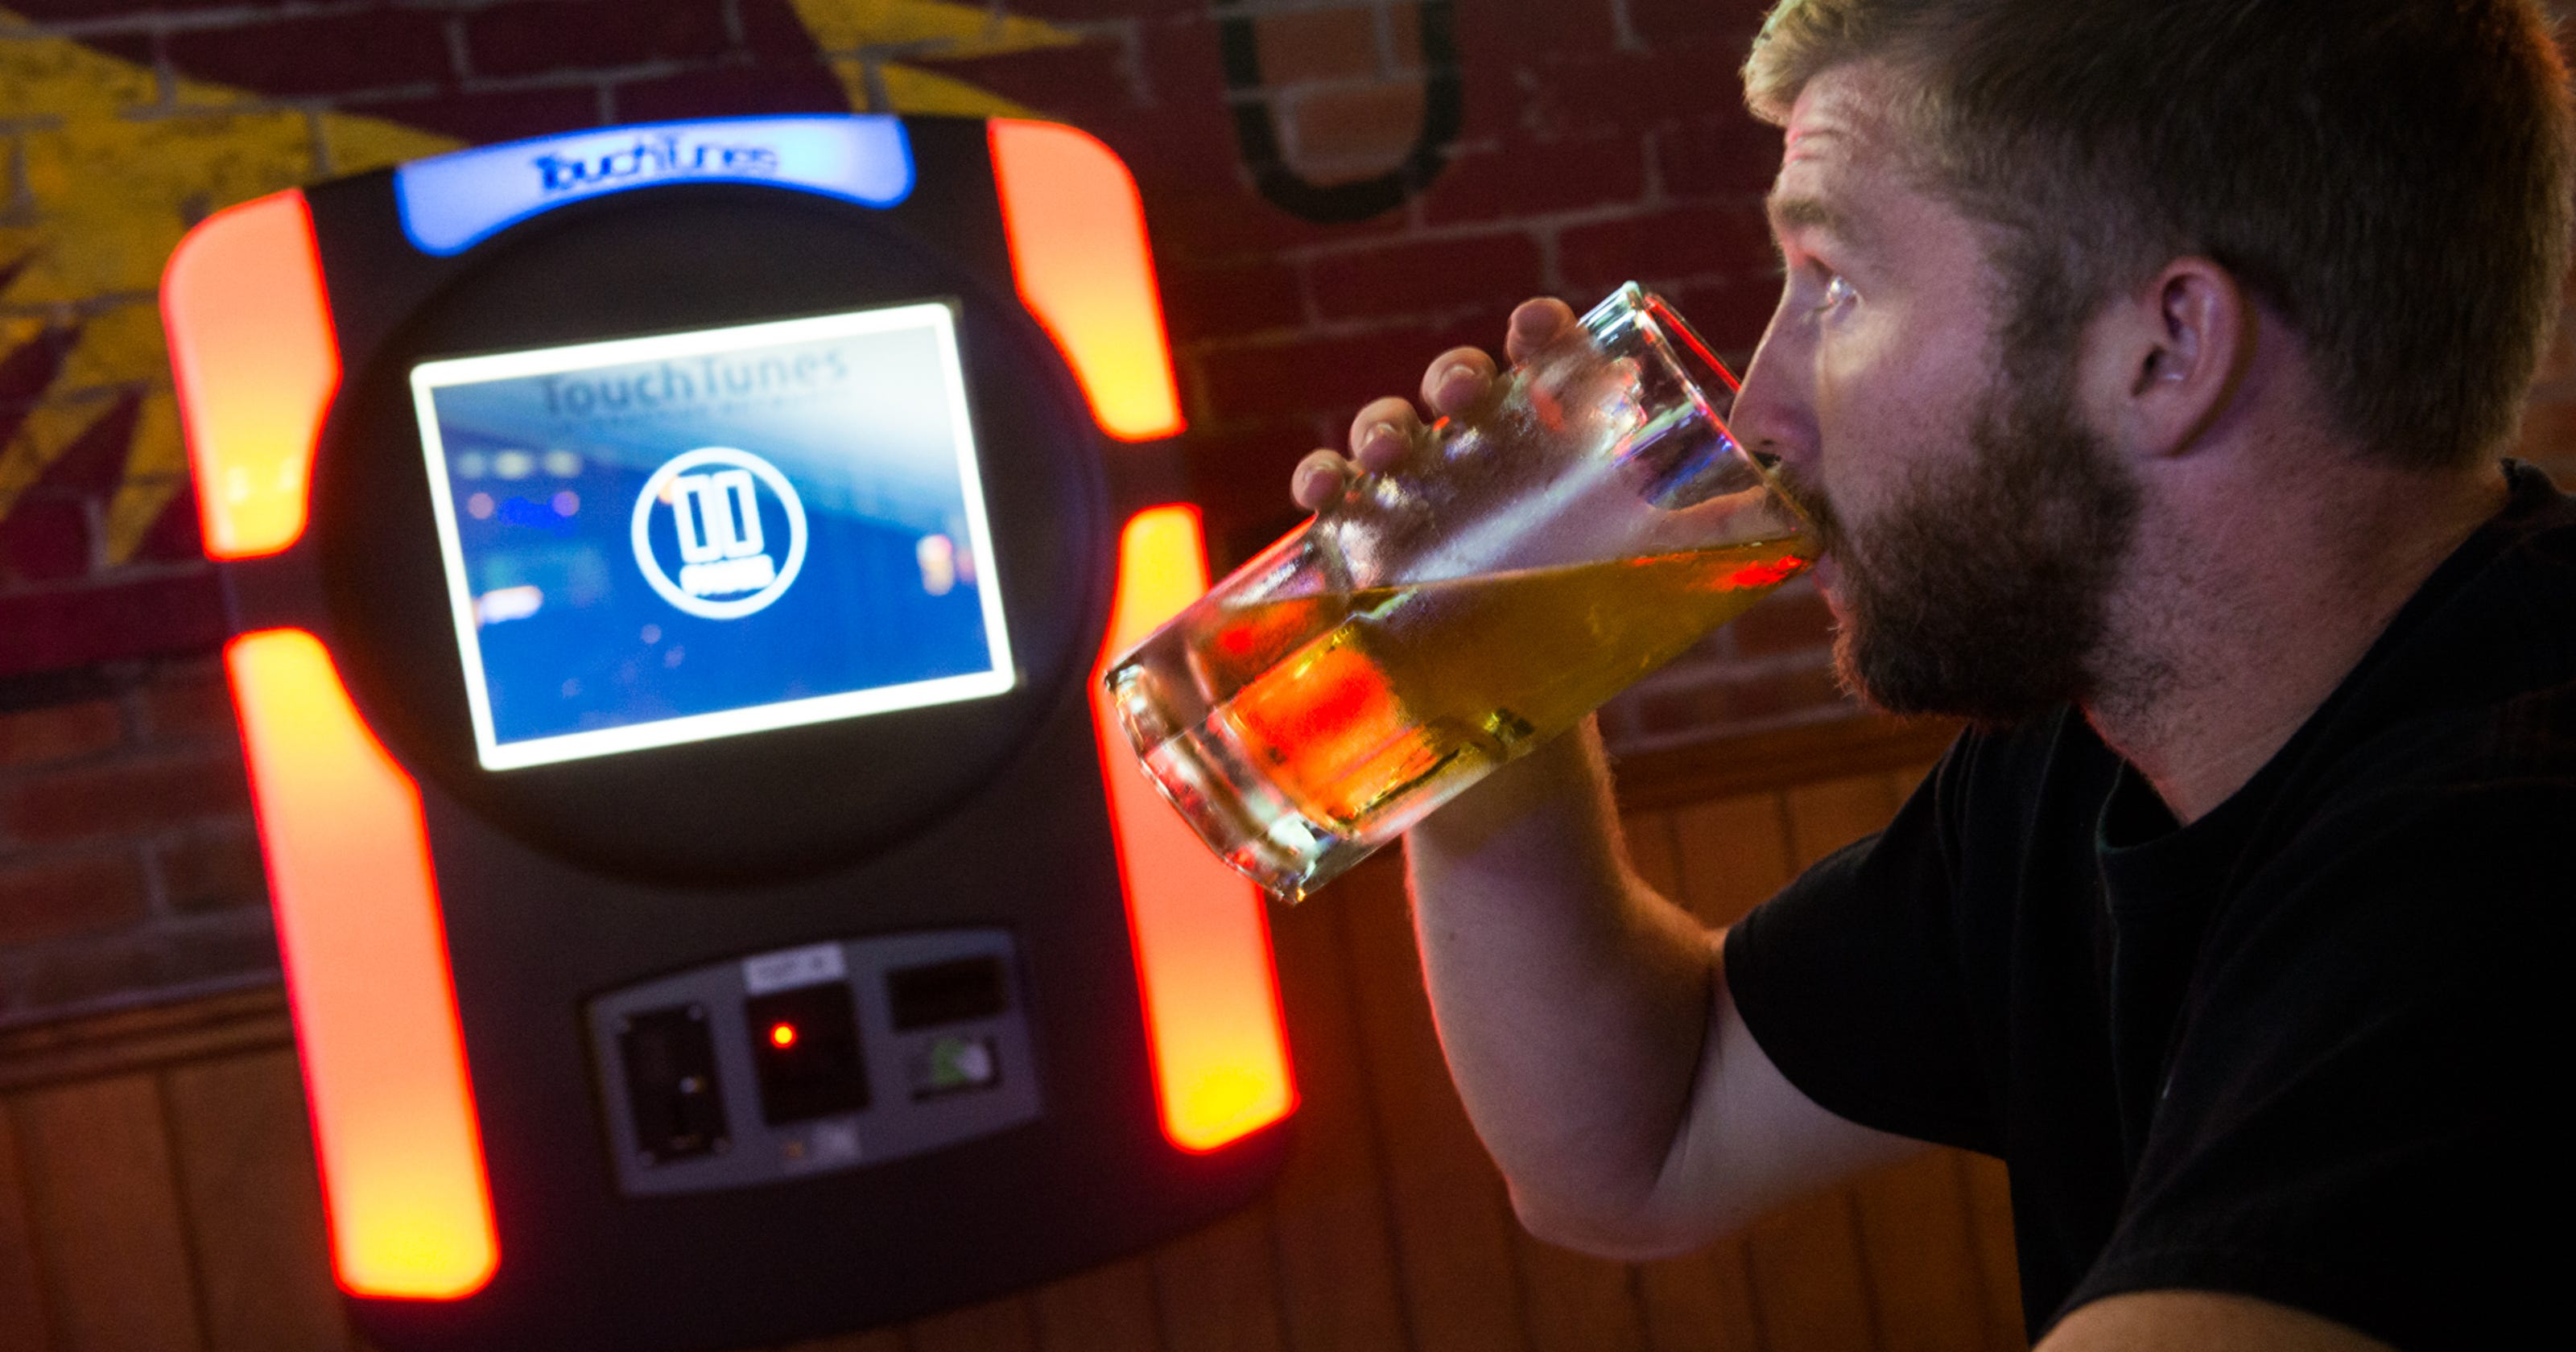 Garth Brooks, Drake, Queen: Iowans love drinking to these songs